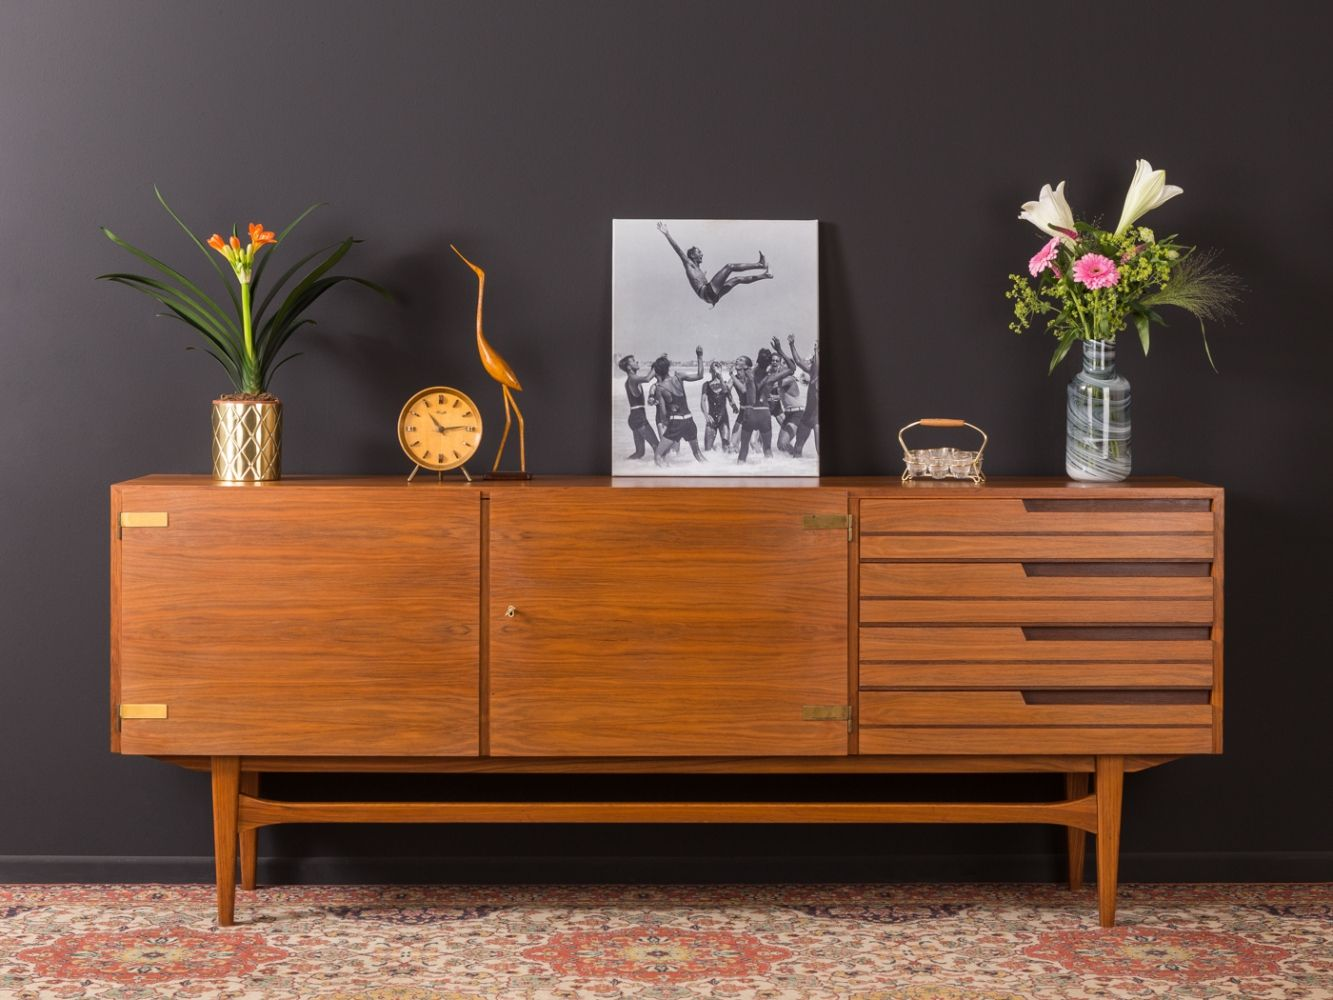 For Sale German Sideboard From The 1950s Mid Century Sideboard